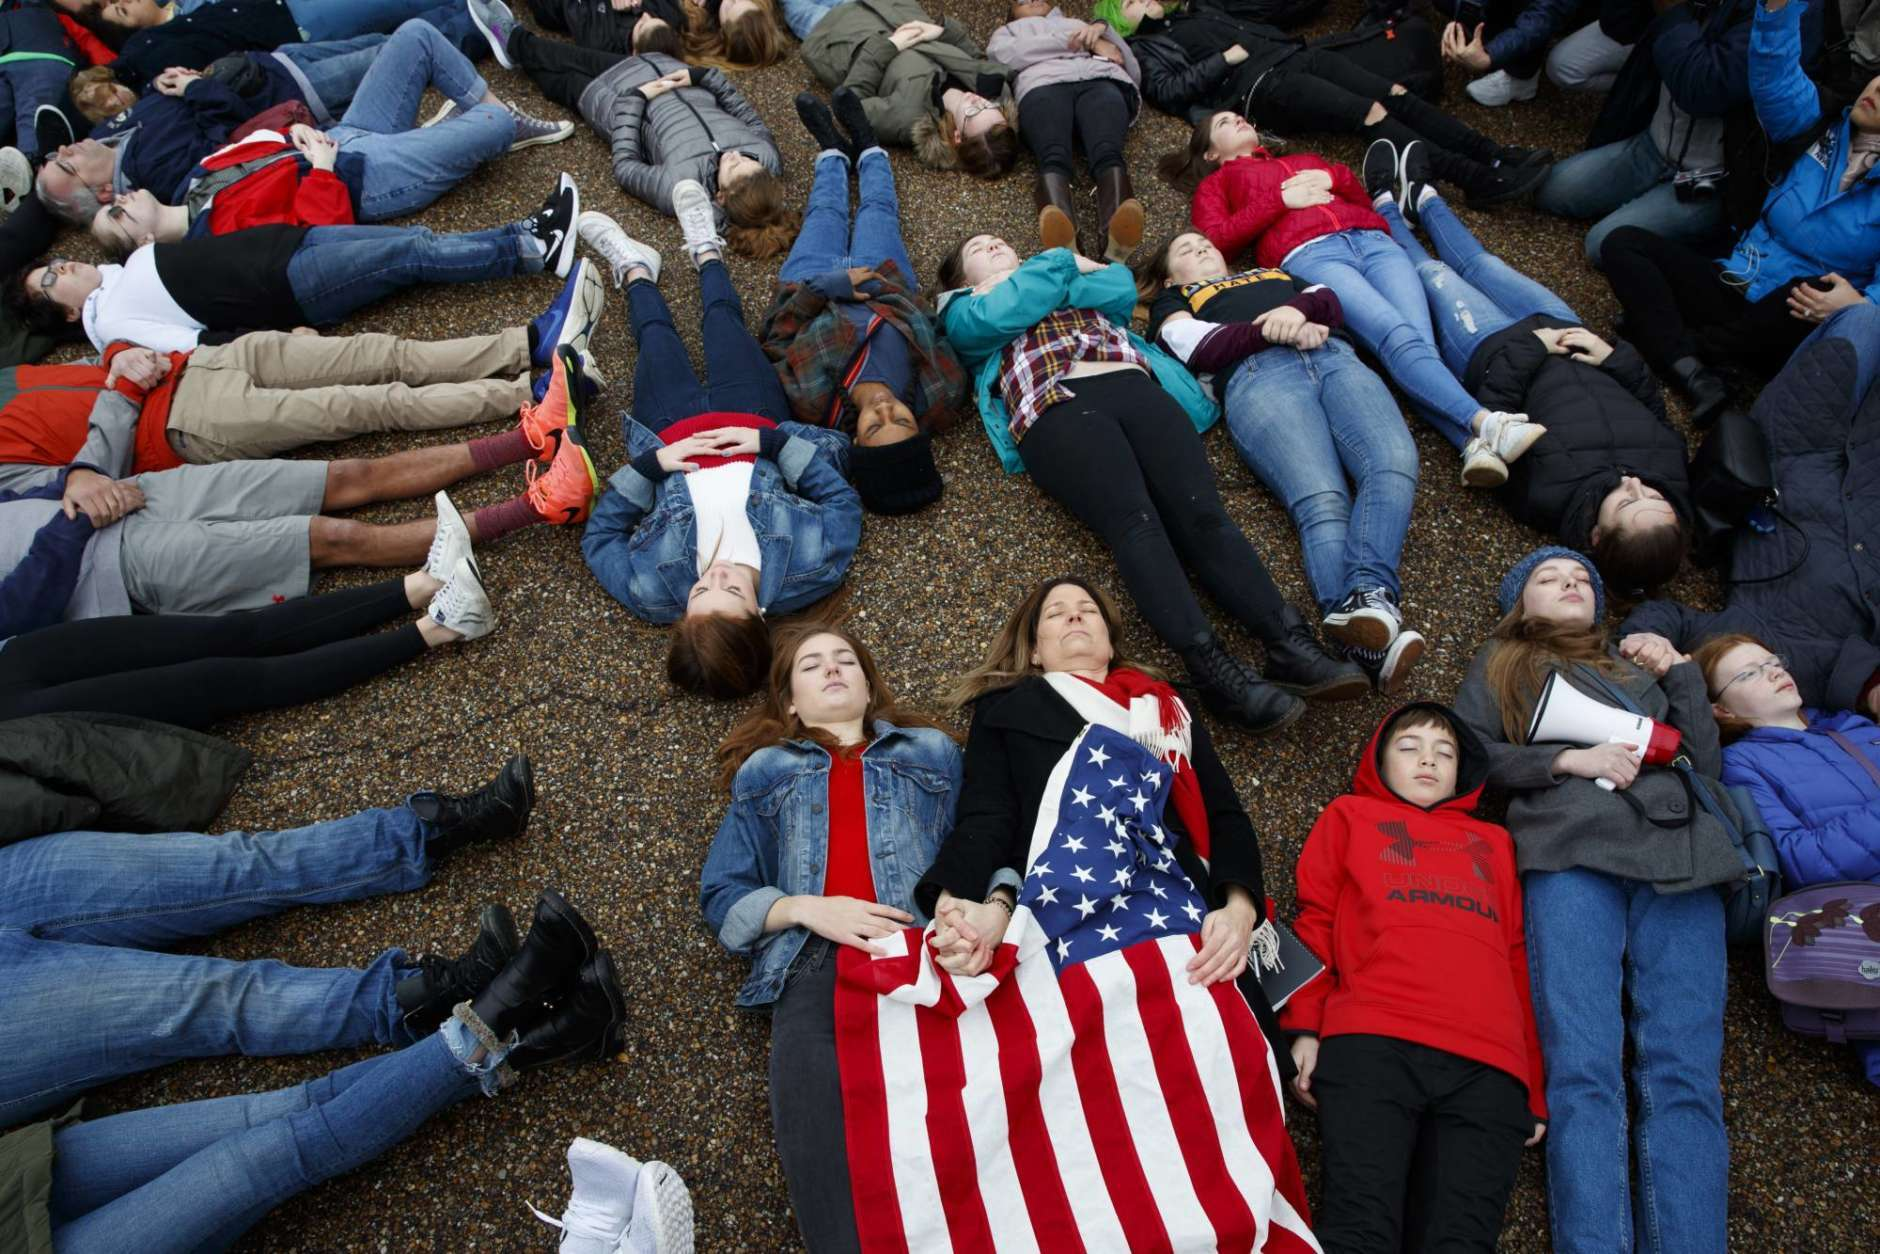 """Abby Spangler and her daughter Eleanor Spangler Neuchterlein, 16, hold hands as they participate in a """"lie-in"""" during a protest in favor of gun control reform in front of the White House, Monday, Feb. 19, 2018, in Washington. (AP Photo/Evan Vucci)"""